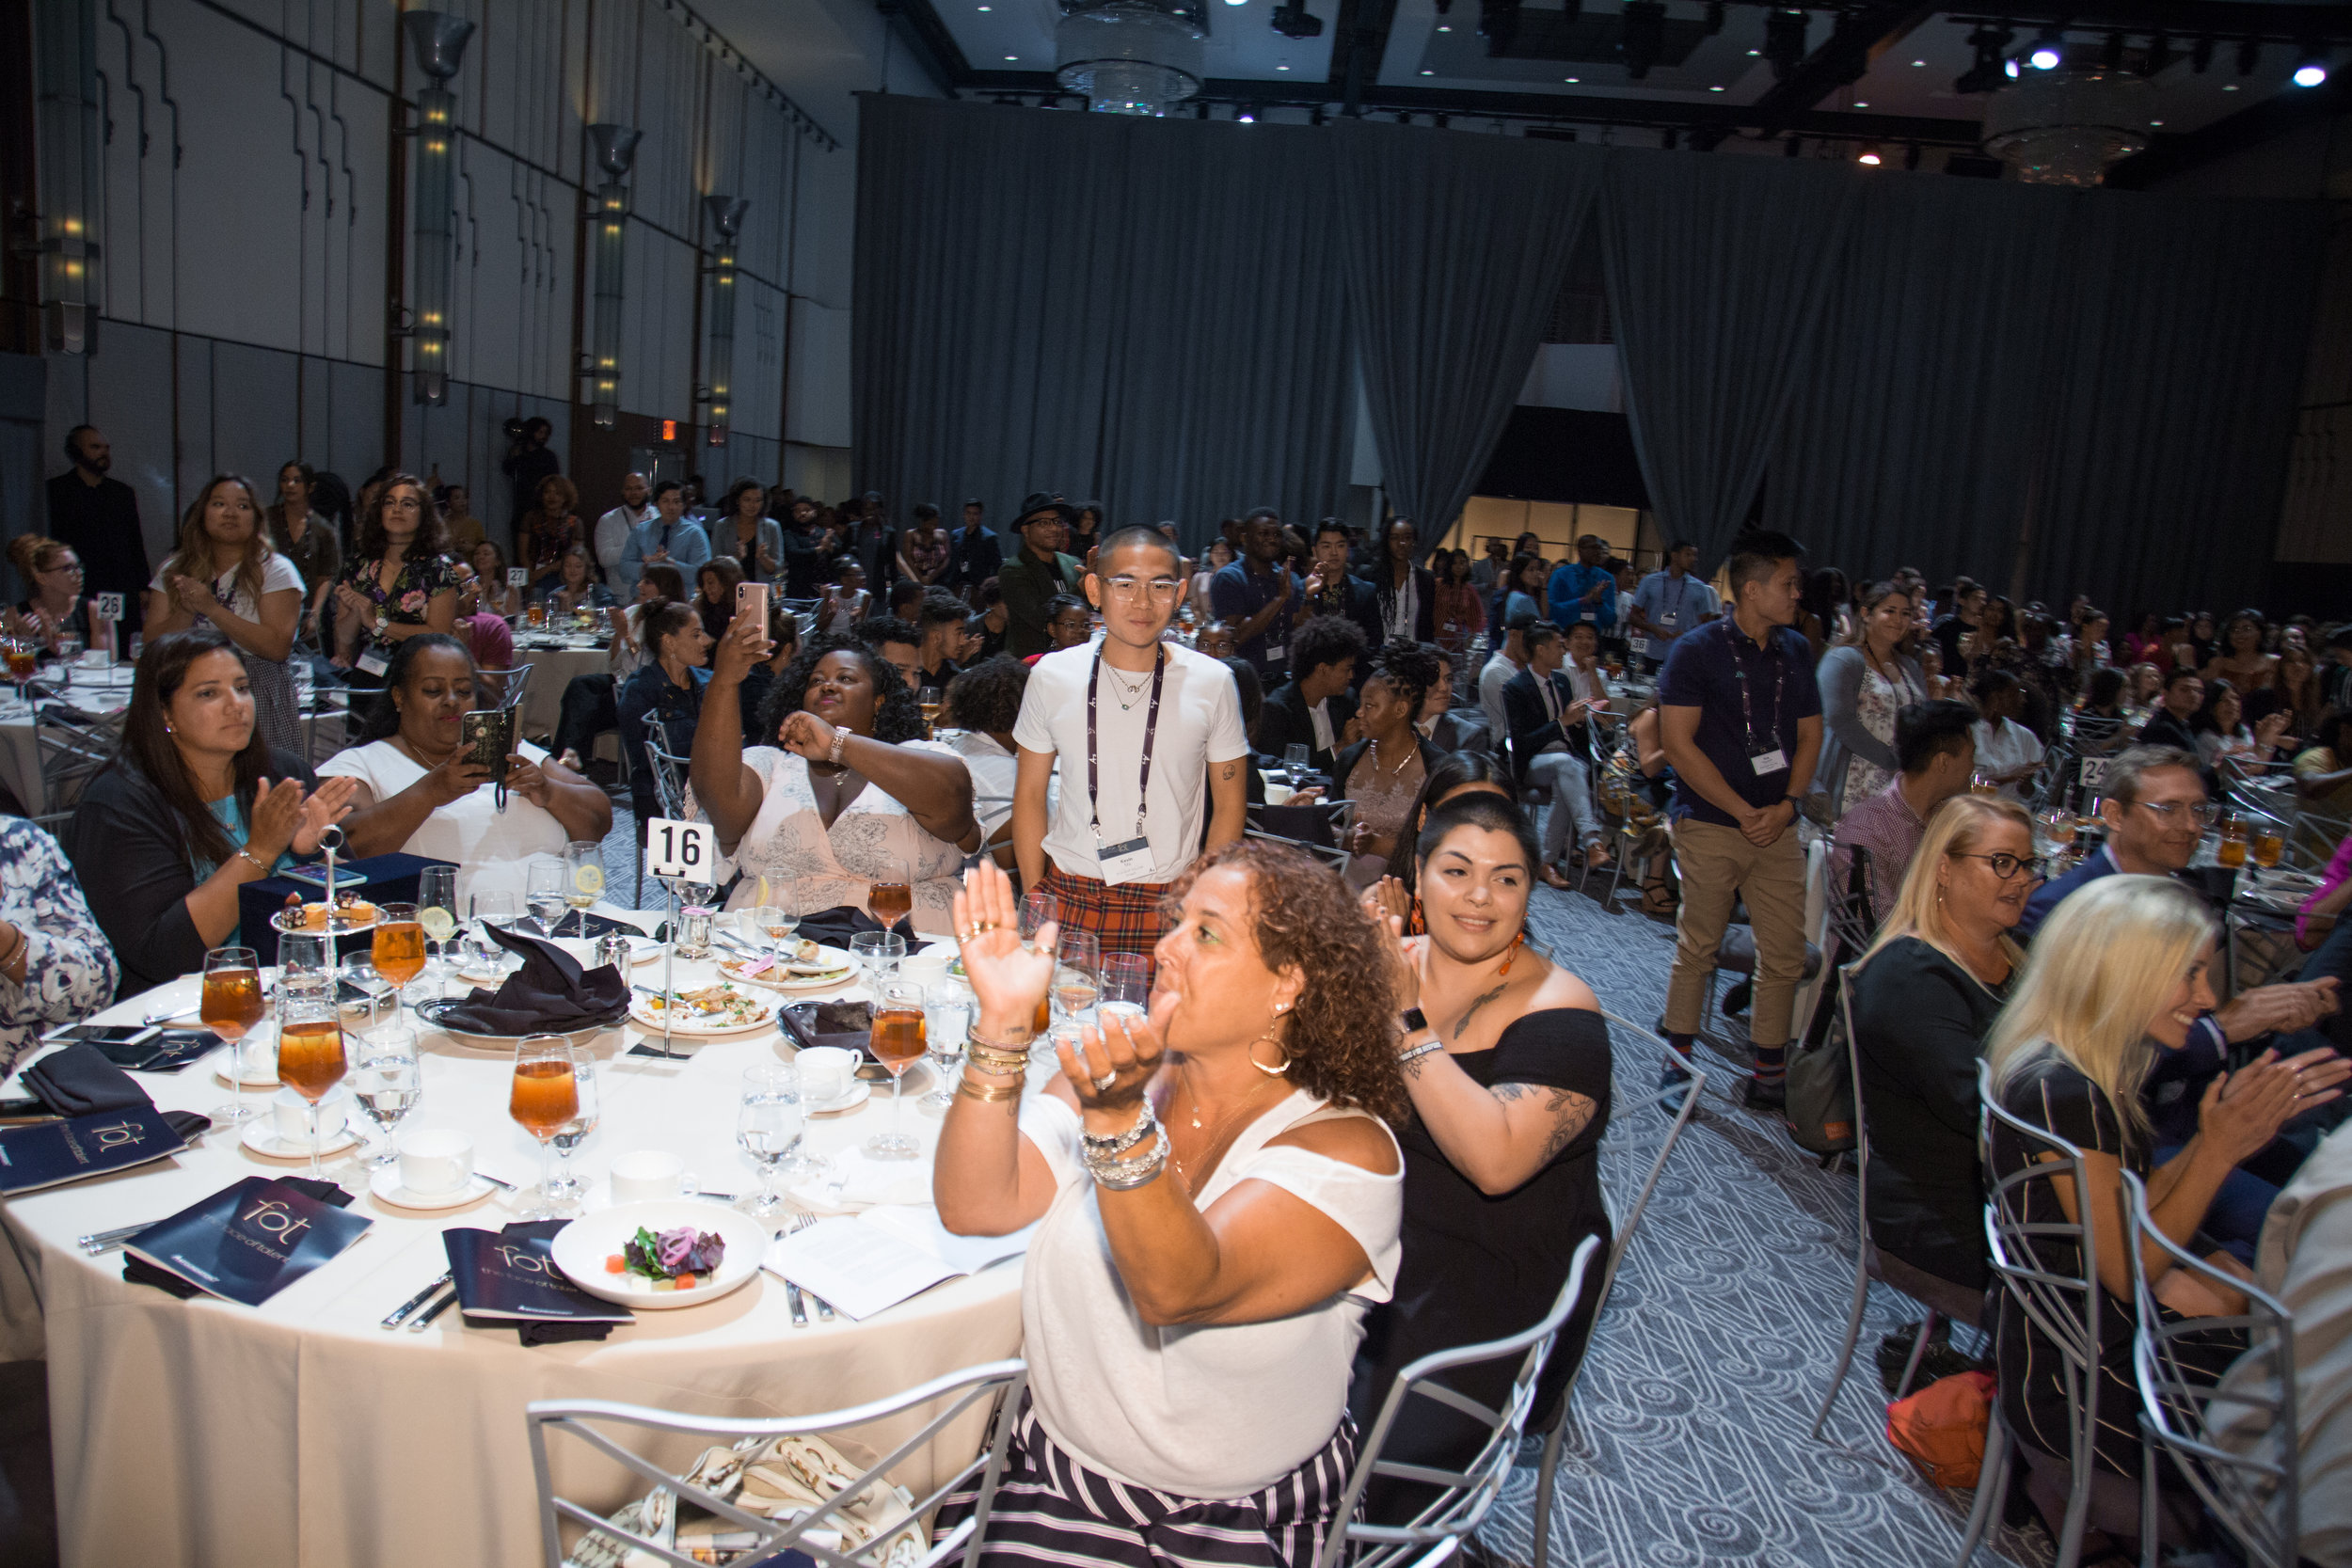 4As_MAIP_FOT_Luncheon_2018_Margarita_Corporan-170.jpg